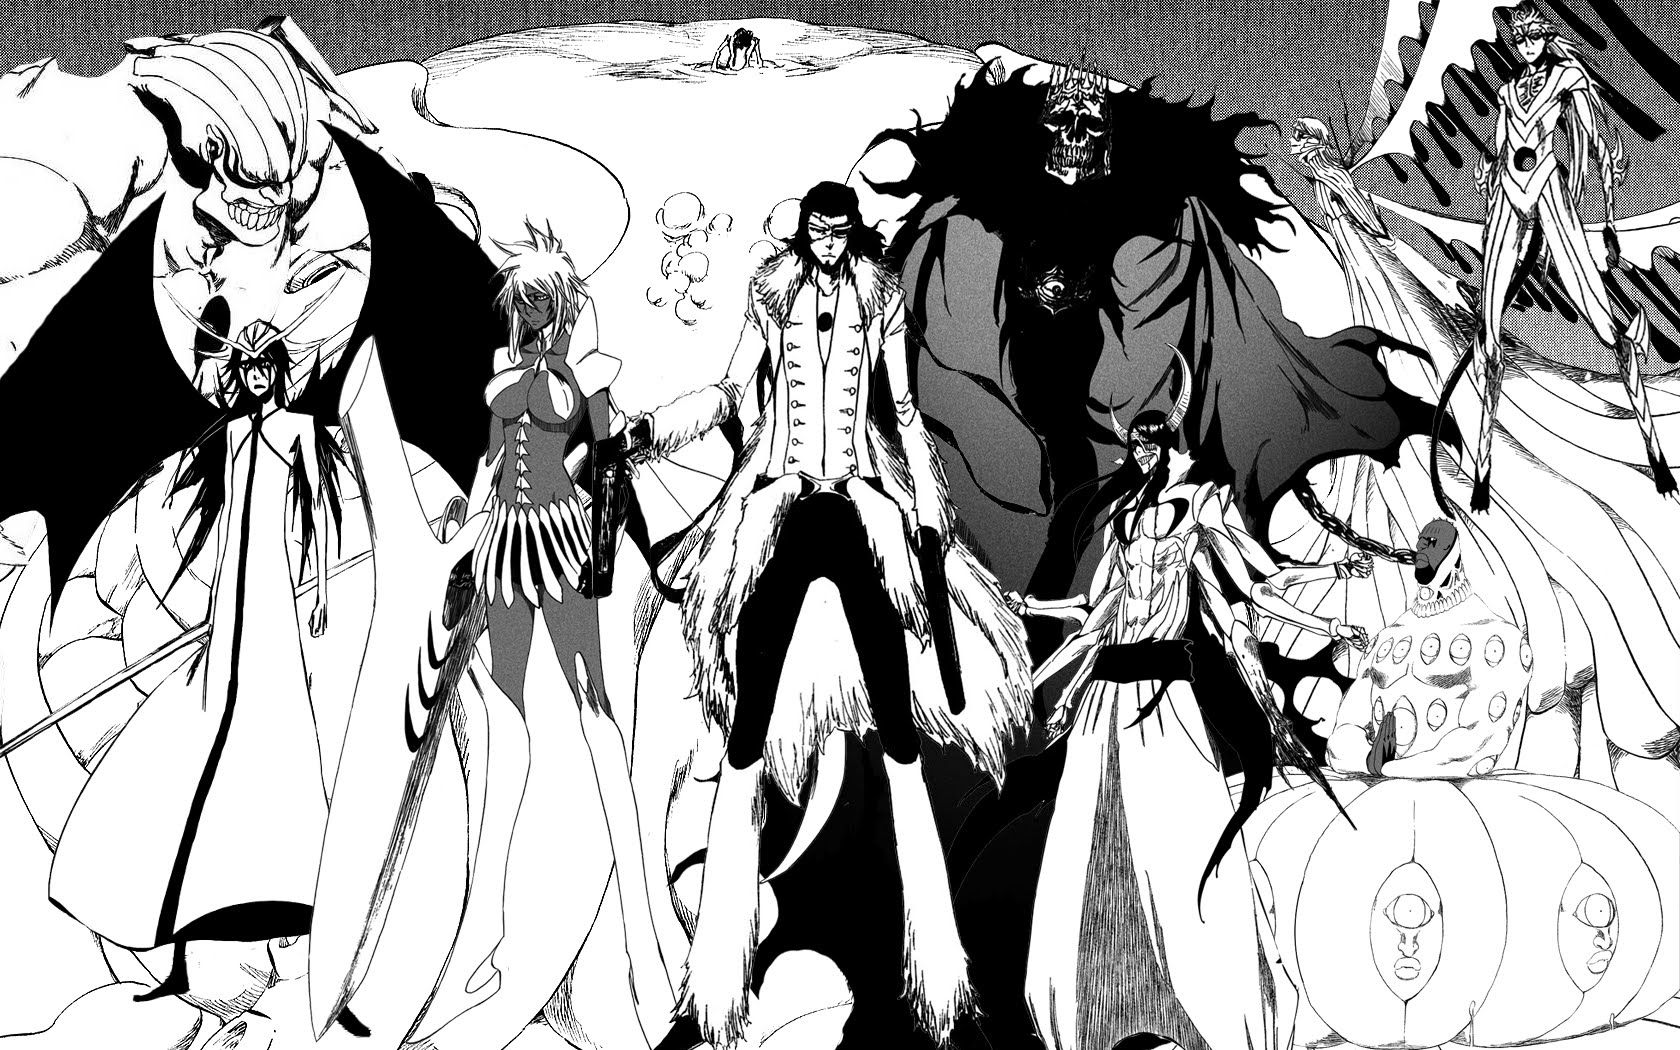 Bleach Espada Wallpapers 1080p | Bleach anime, Bleach characters ...